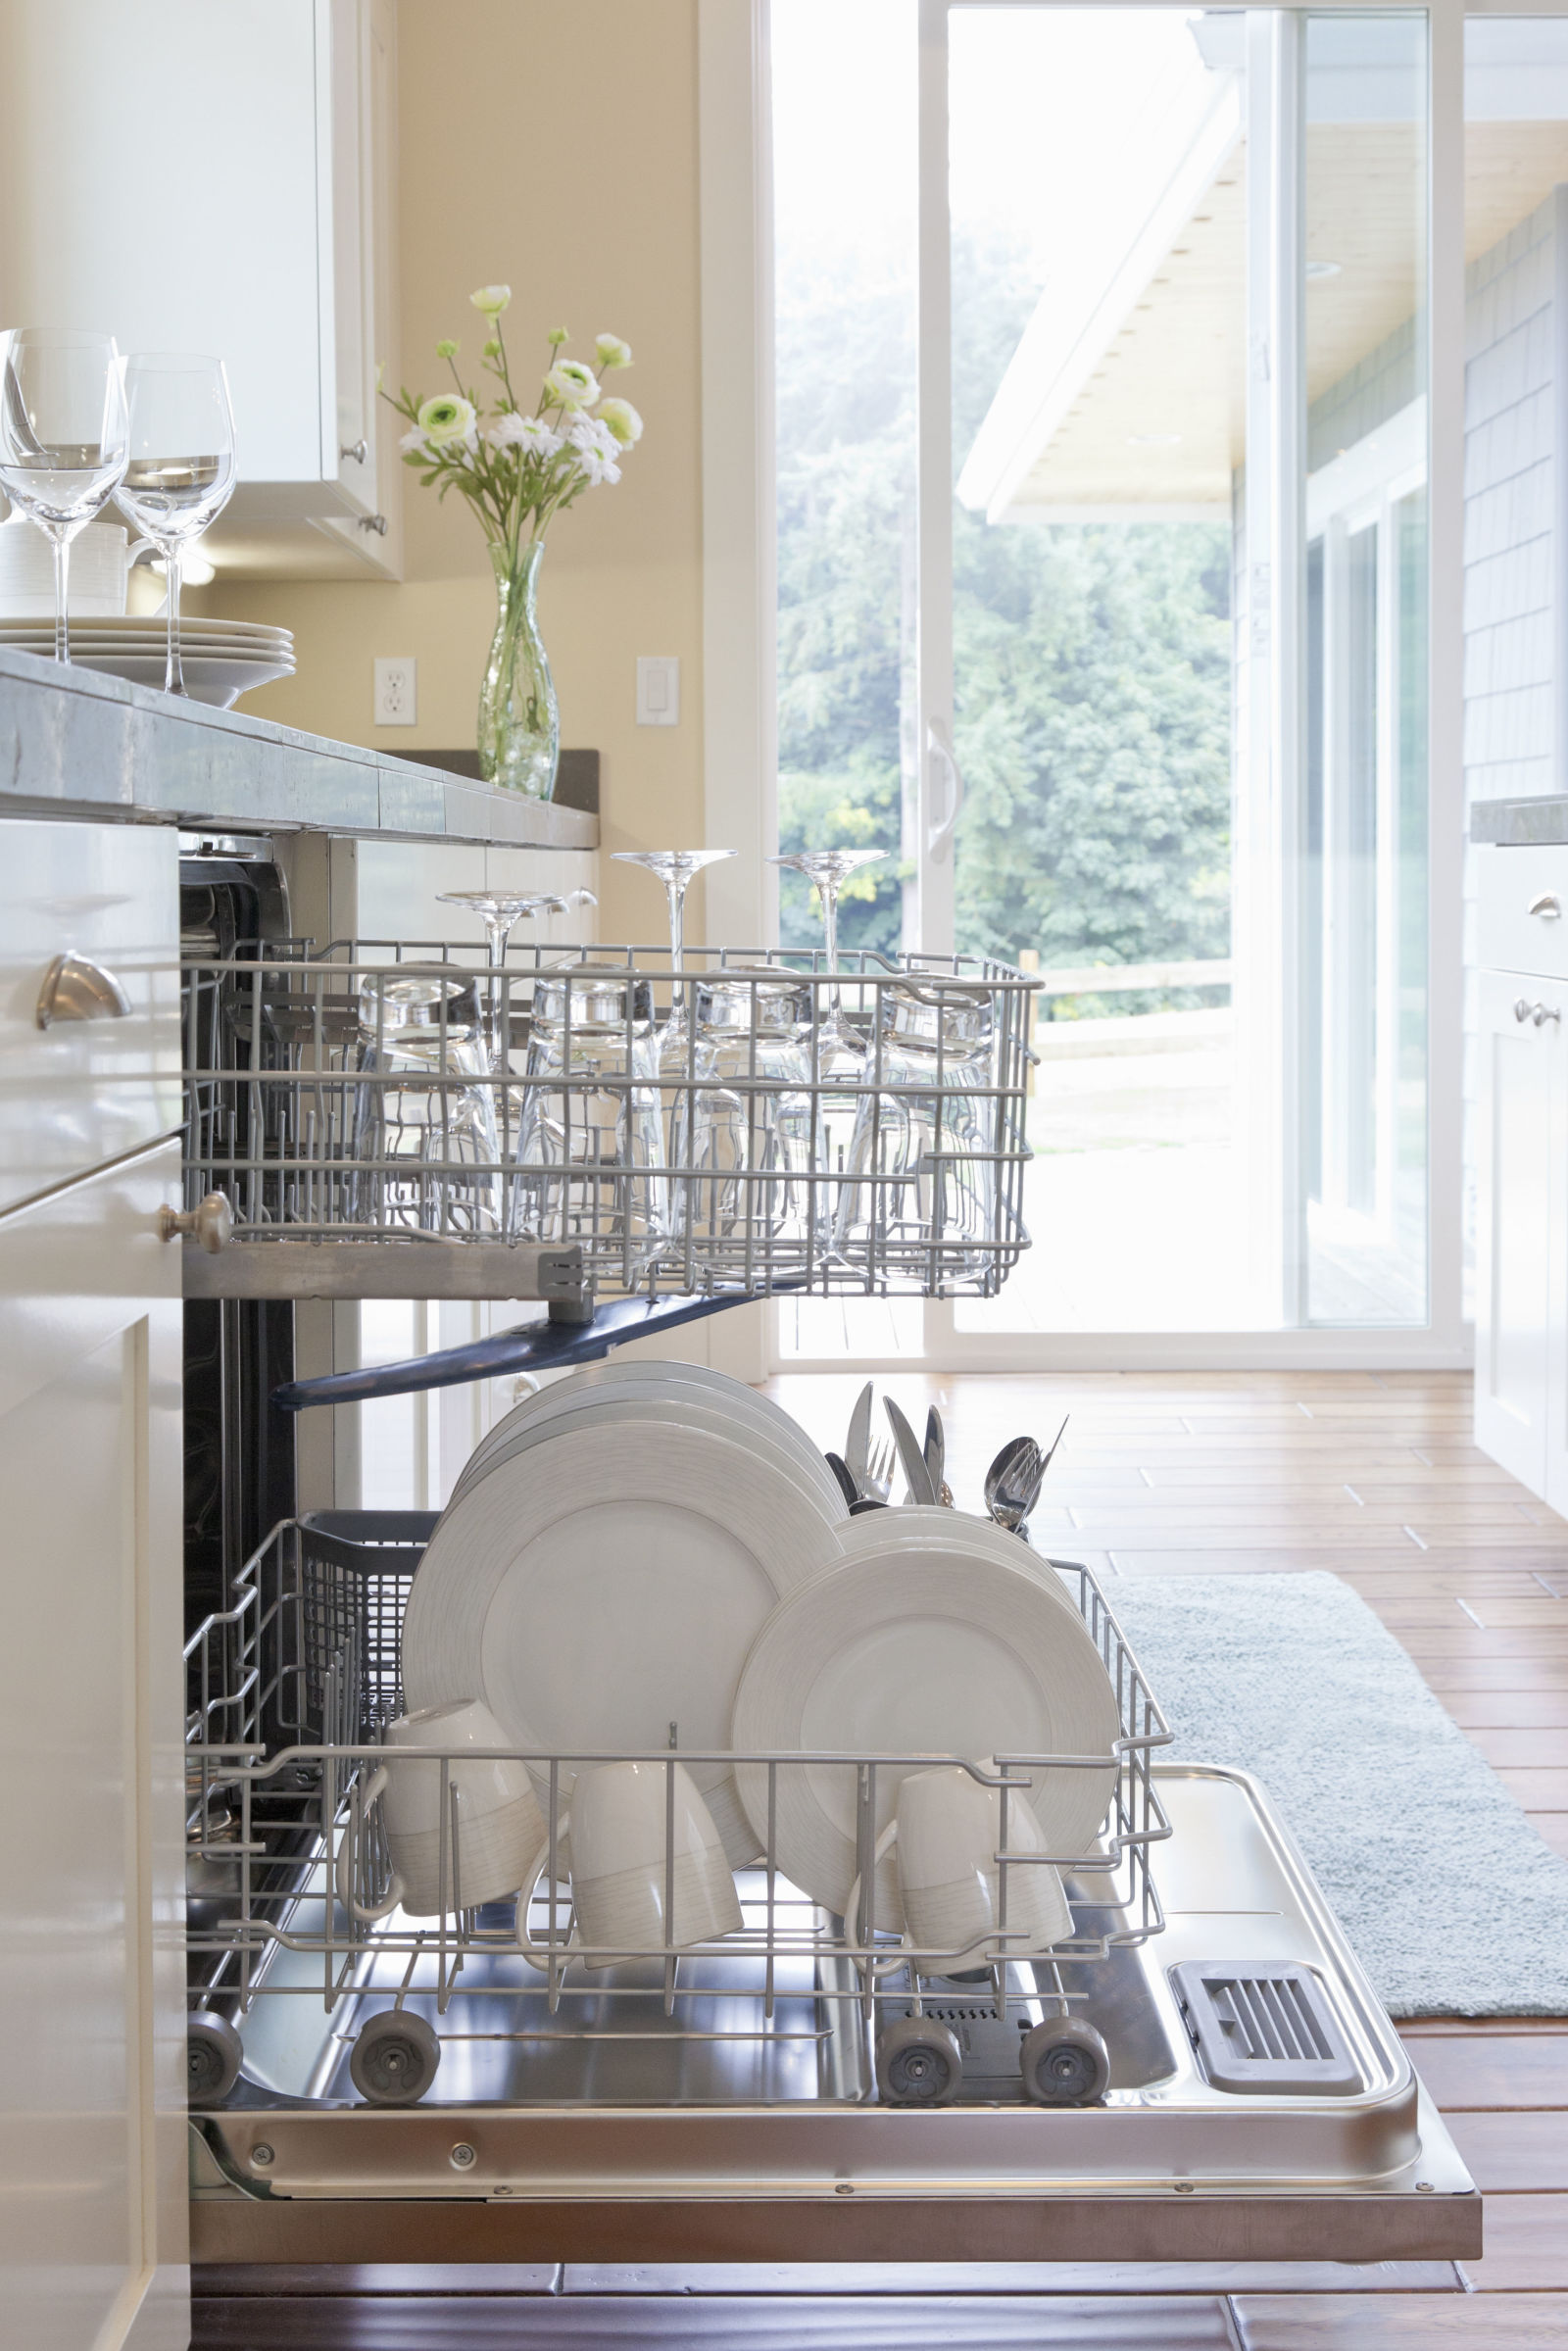 gallery-1459452951-do-dishwasher-duty-getty-credit-ml-harris